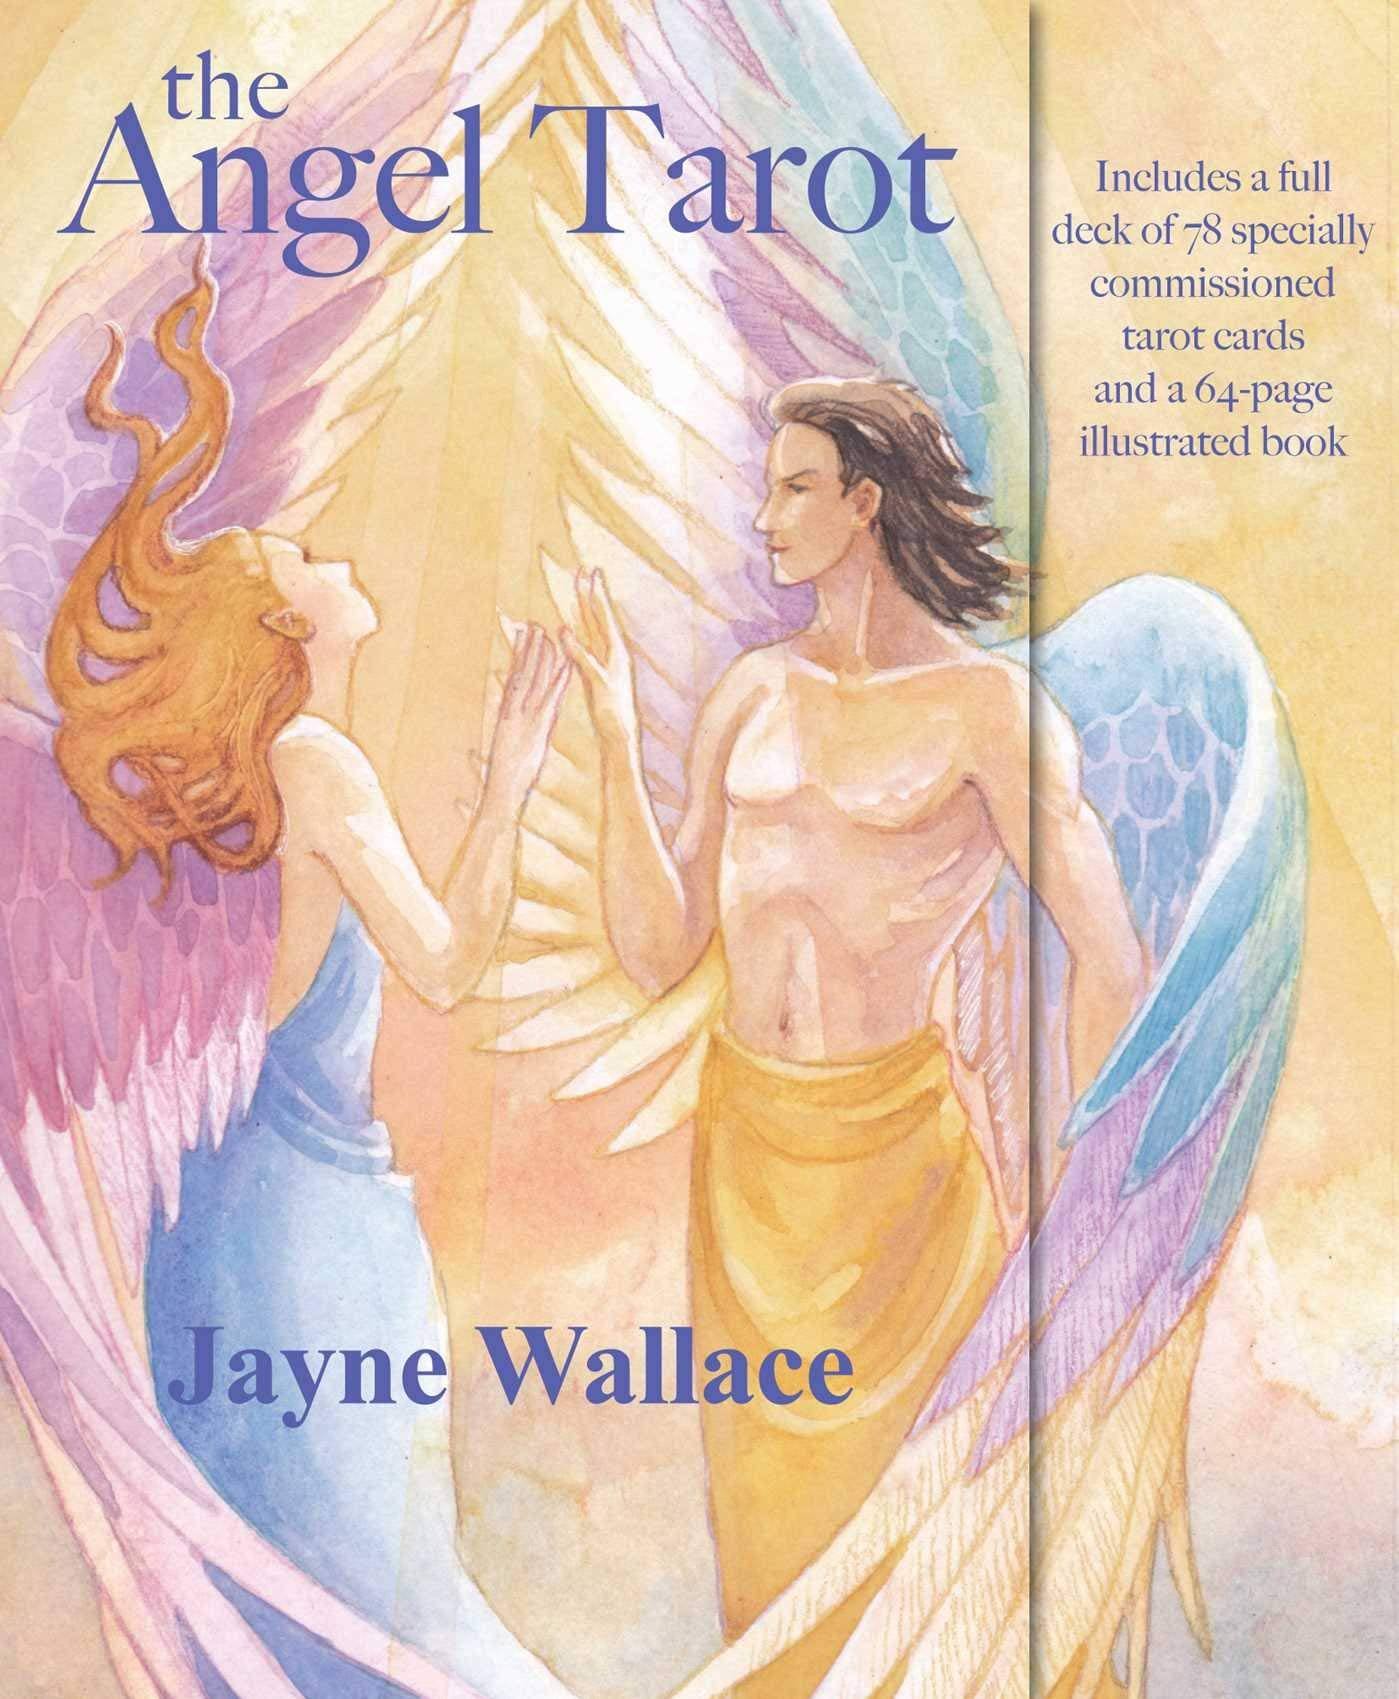 The Angel Tarot: Includes a full deck of 78 specially commissioned tarot cards and a 64-page illustrated book : Wallace, Jayne: Amazon.in: Books